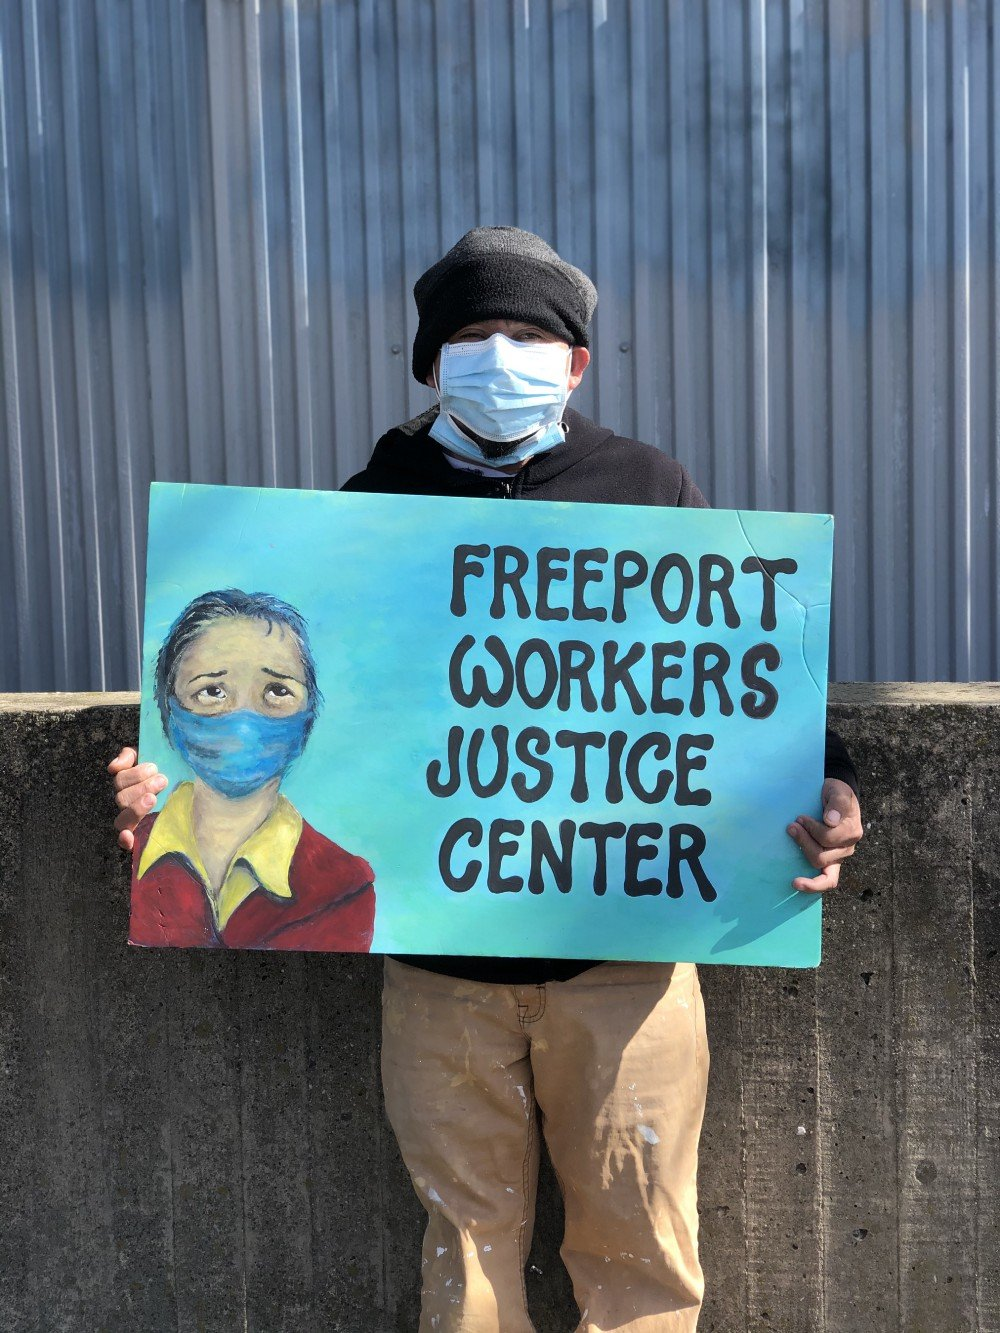 Hector Rodolfo Gomez, 43, a member of Freeport's Workers Justice Center.